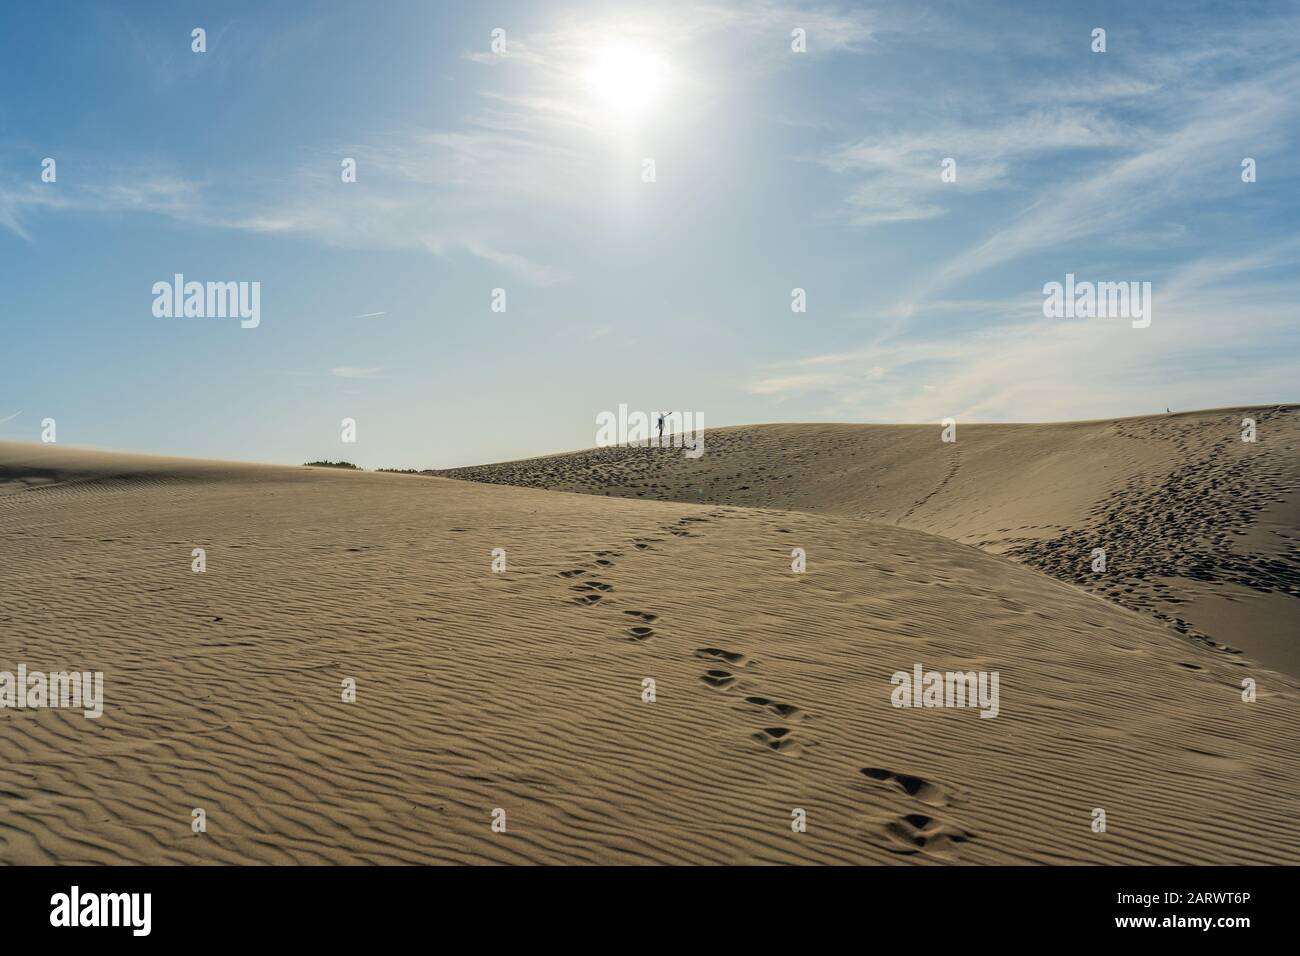 Beautiful shot of a sandy beach in bolonia spain under the heat of the sun Stock Photo